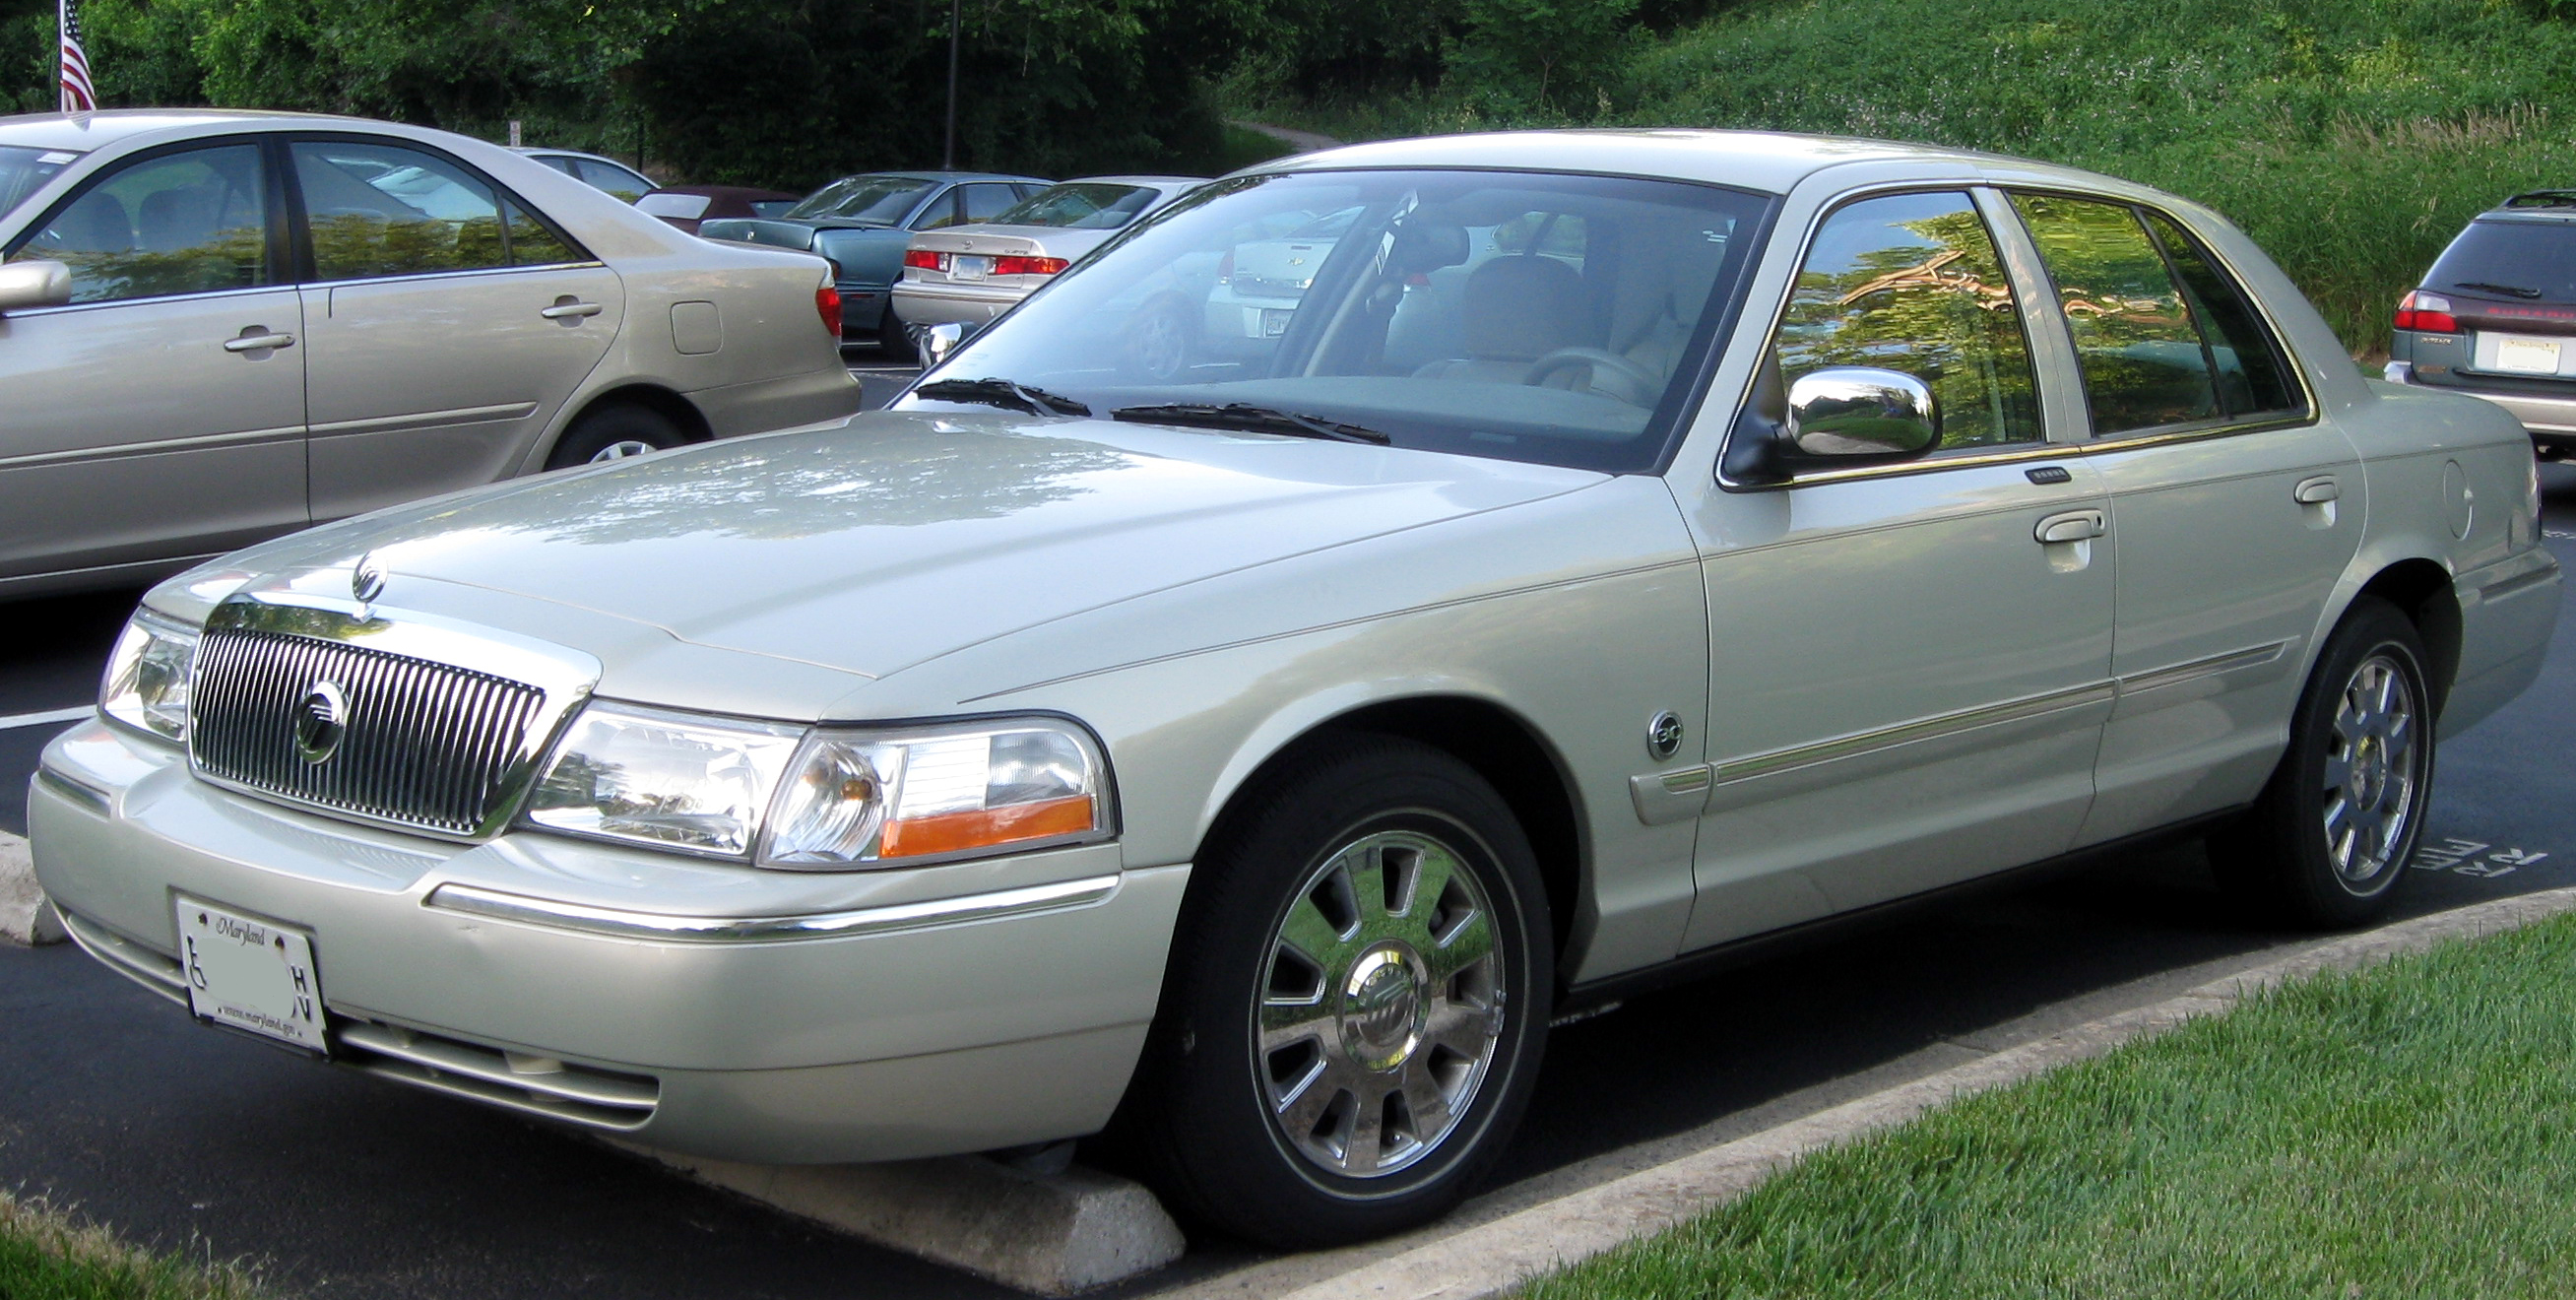 2005 Mercury Grand Marquis #1